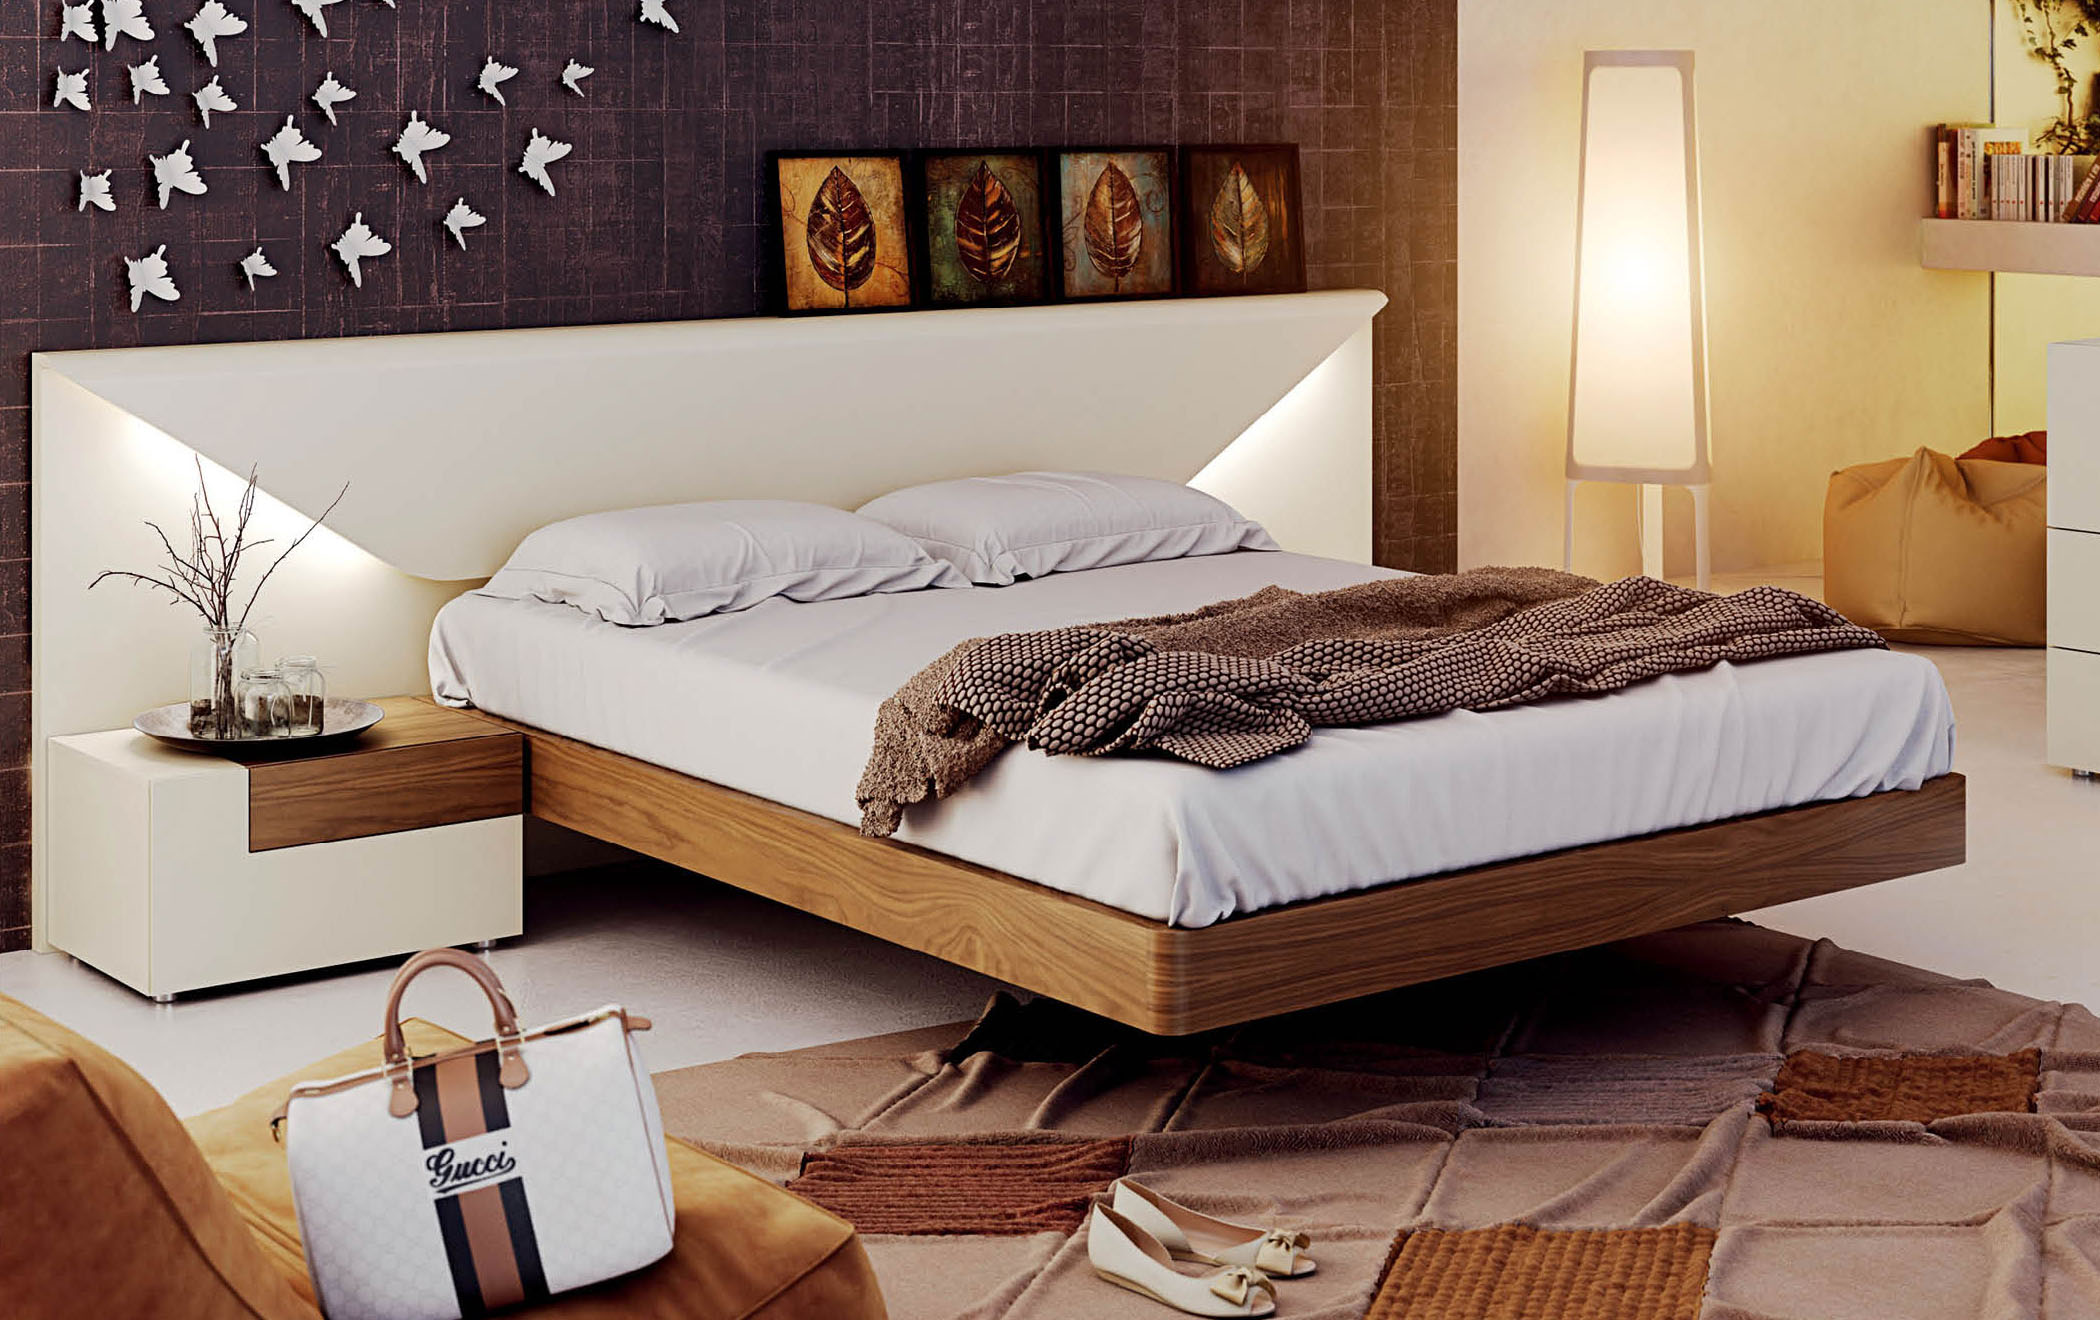 Best Sales For Beds